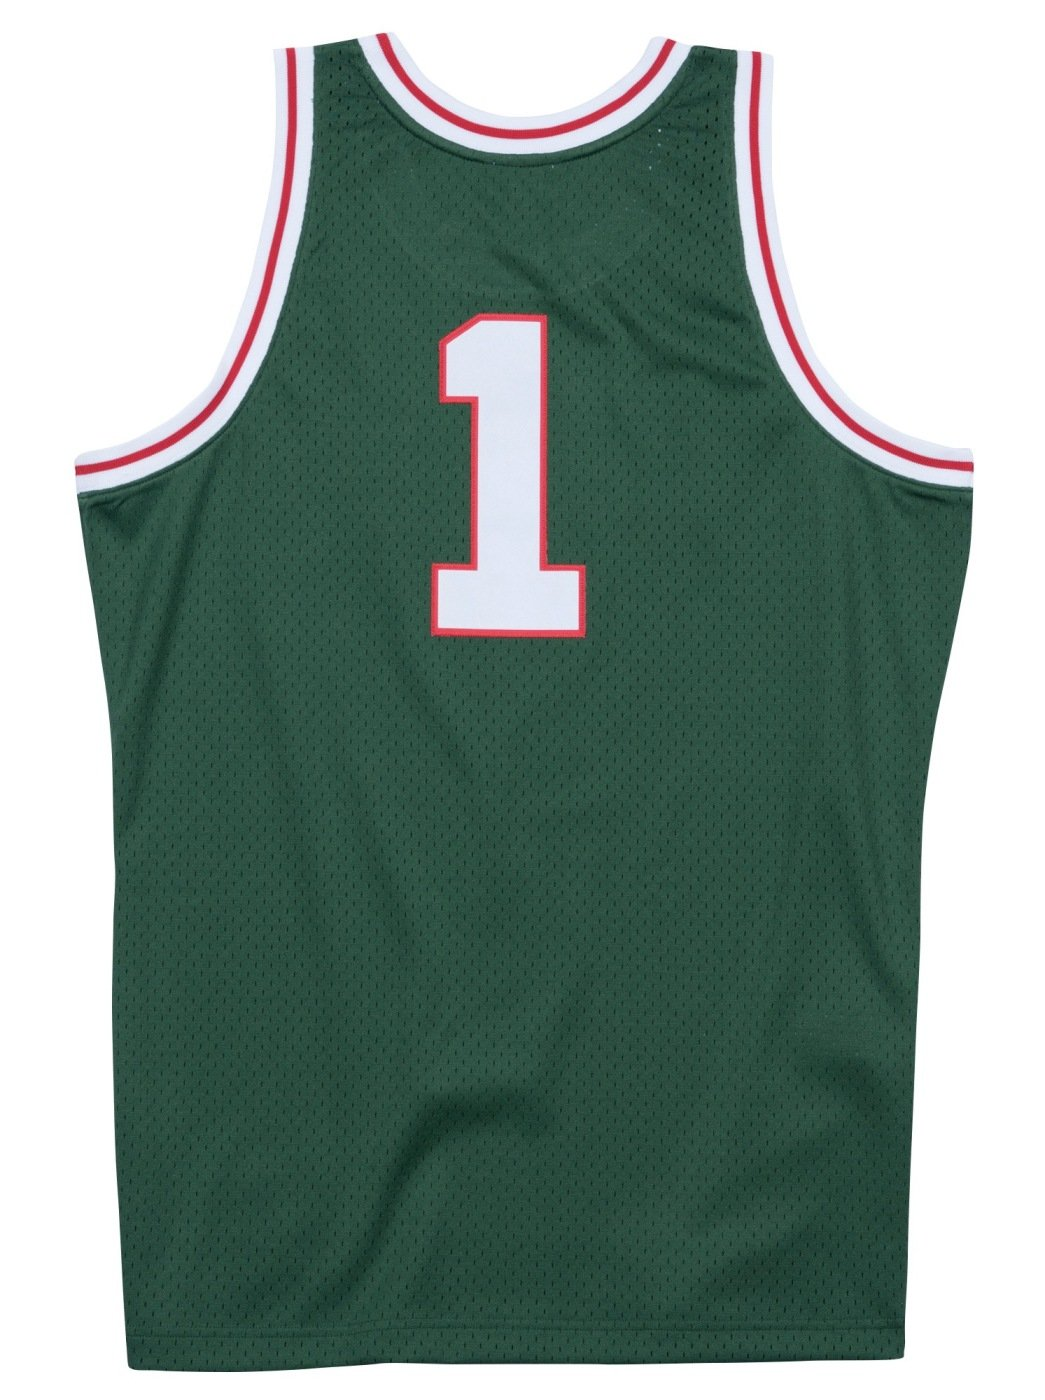 2fd55098b Amazon.com   Mitchell   Ness Oscar Robertson Milwaukee Bucks NBA Throwback  Jersey - Green   Sports   Outdoors